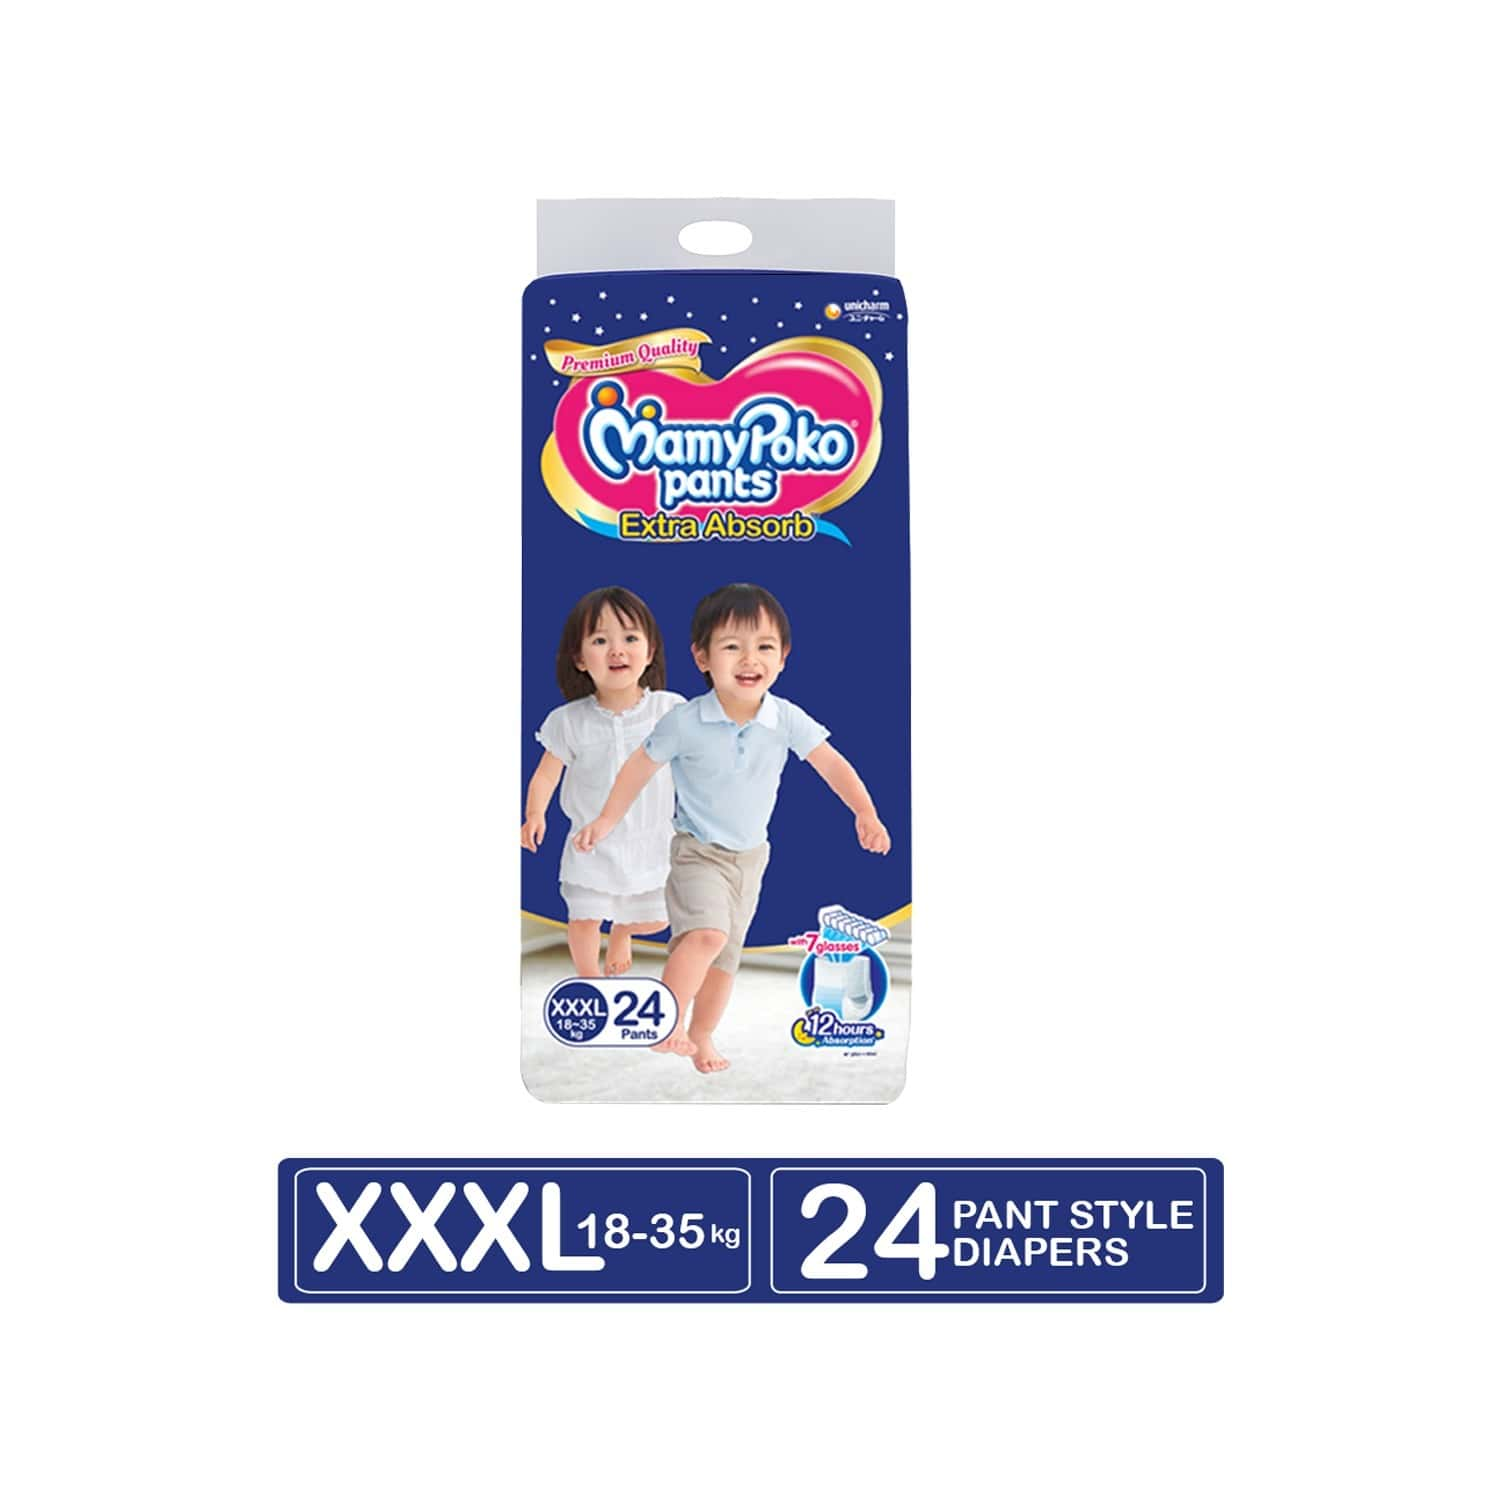 Mamypoko Pants Extra Absorb Diaper - Xxxl Size, Pack Of 24 Diapers